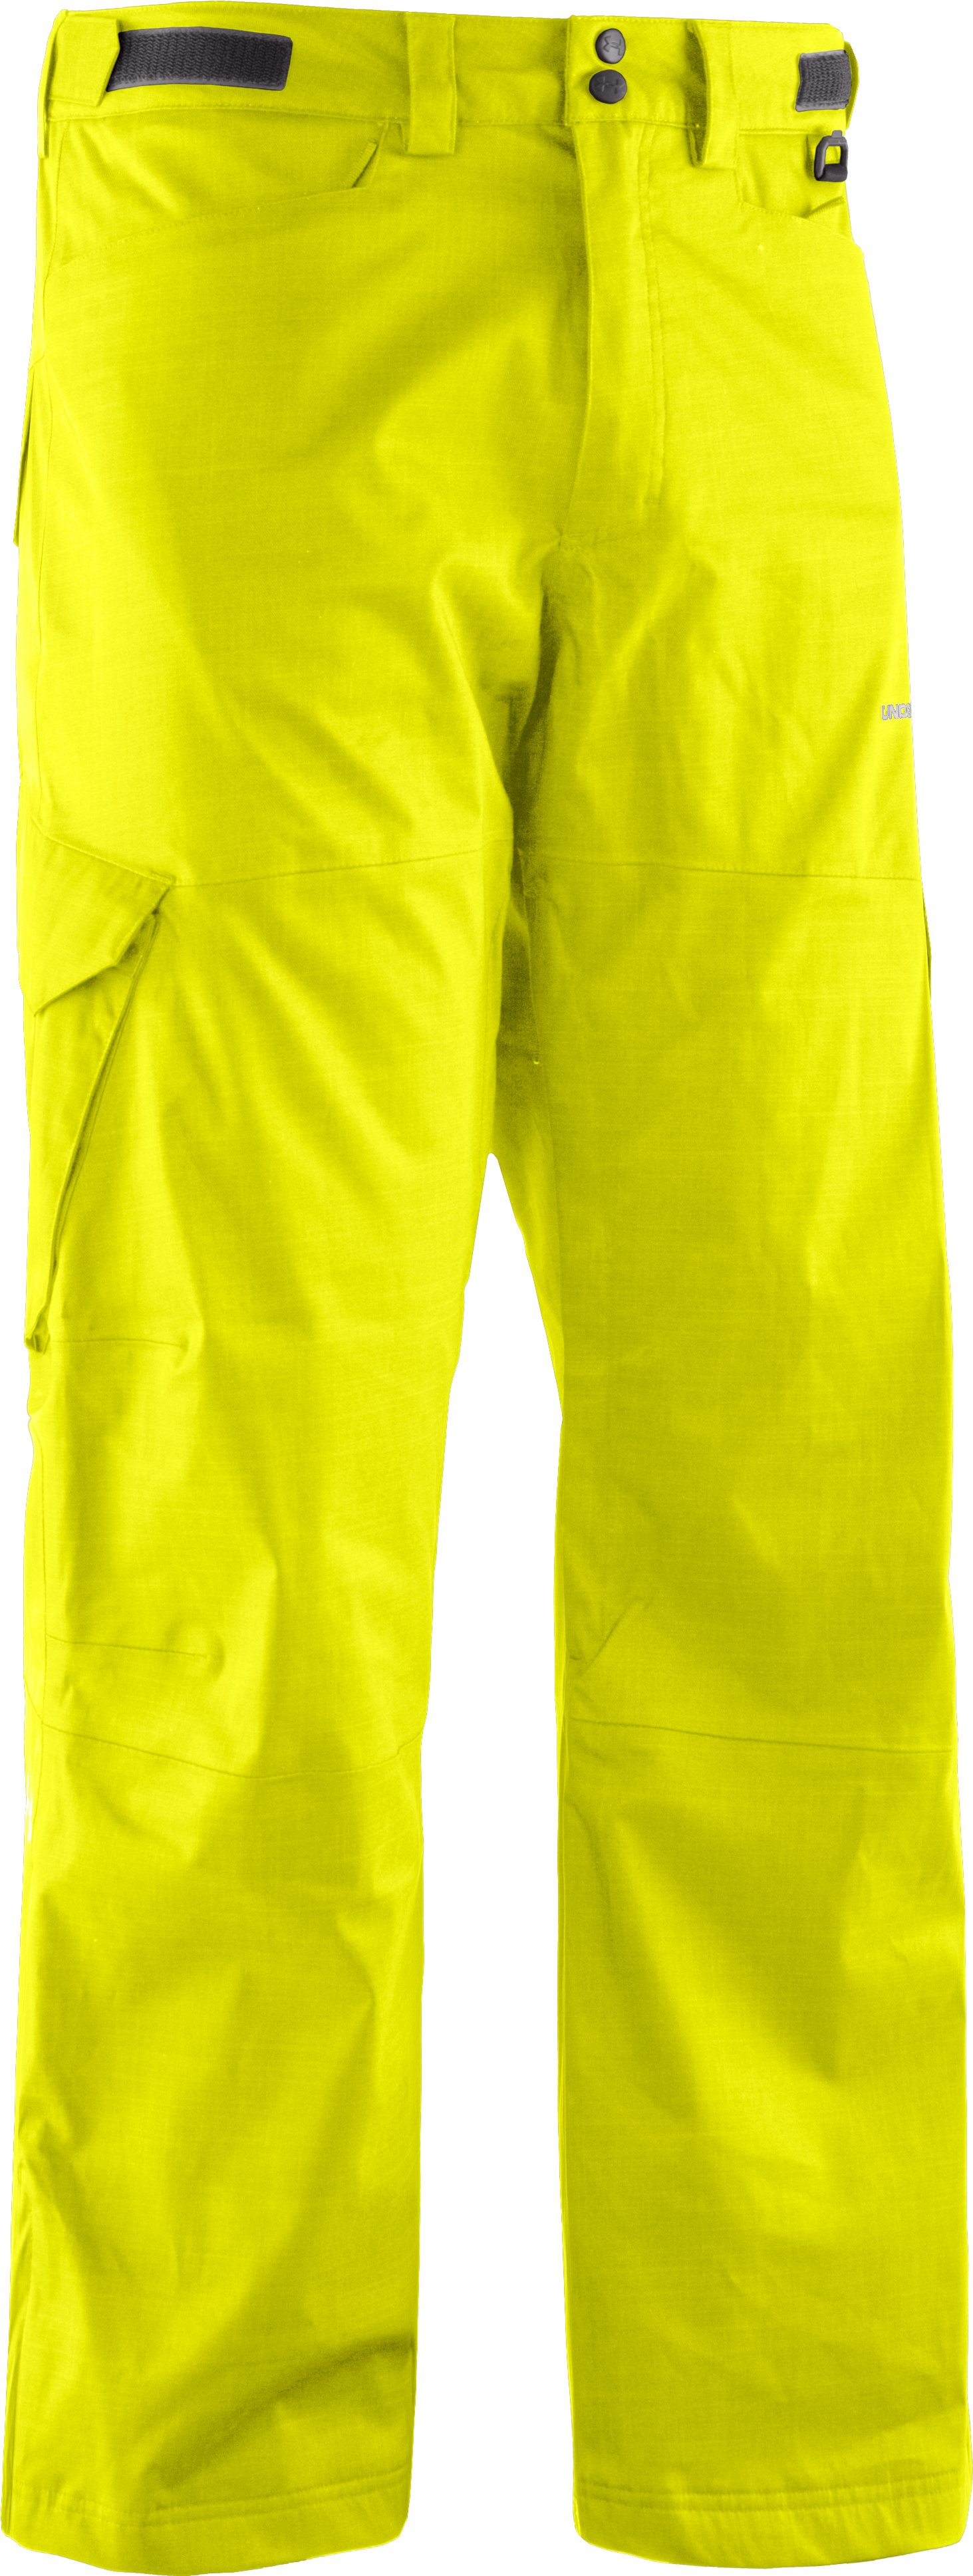 Men's ColdGear® Infrared Snocone Pants, High-Vis Yellow